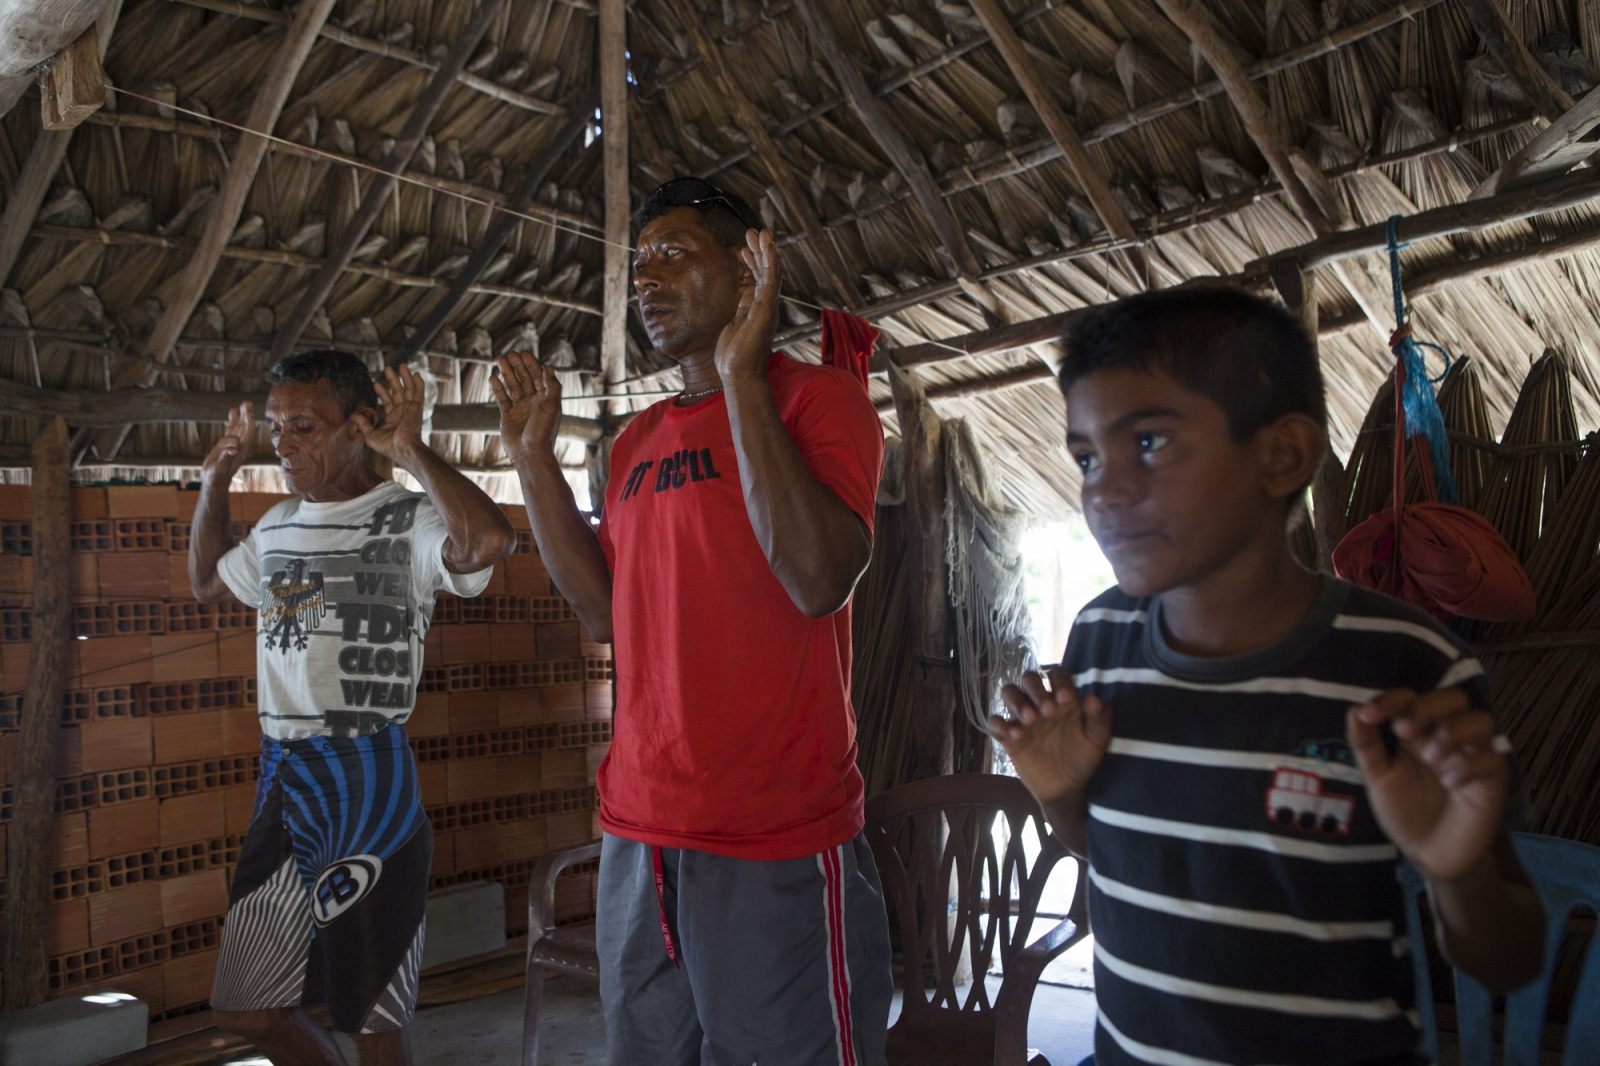 Eduardo, Zé Brito and  Manuel Brito during the mass in the community shack of the village. Every weekend a few members of the community get together for the Sunday prayer.